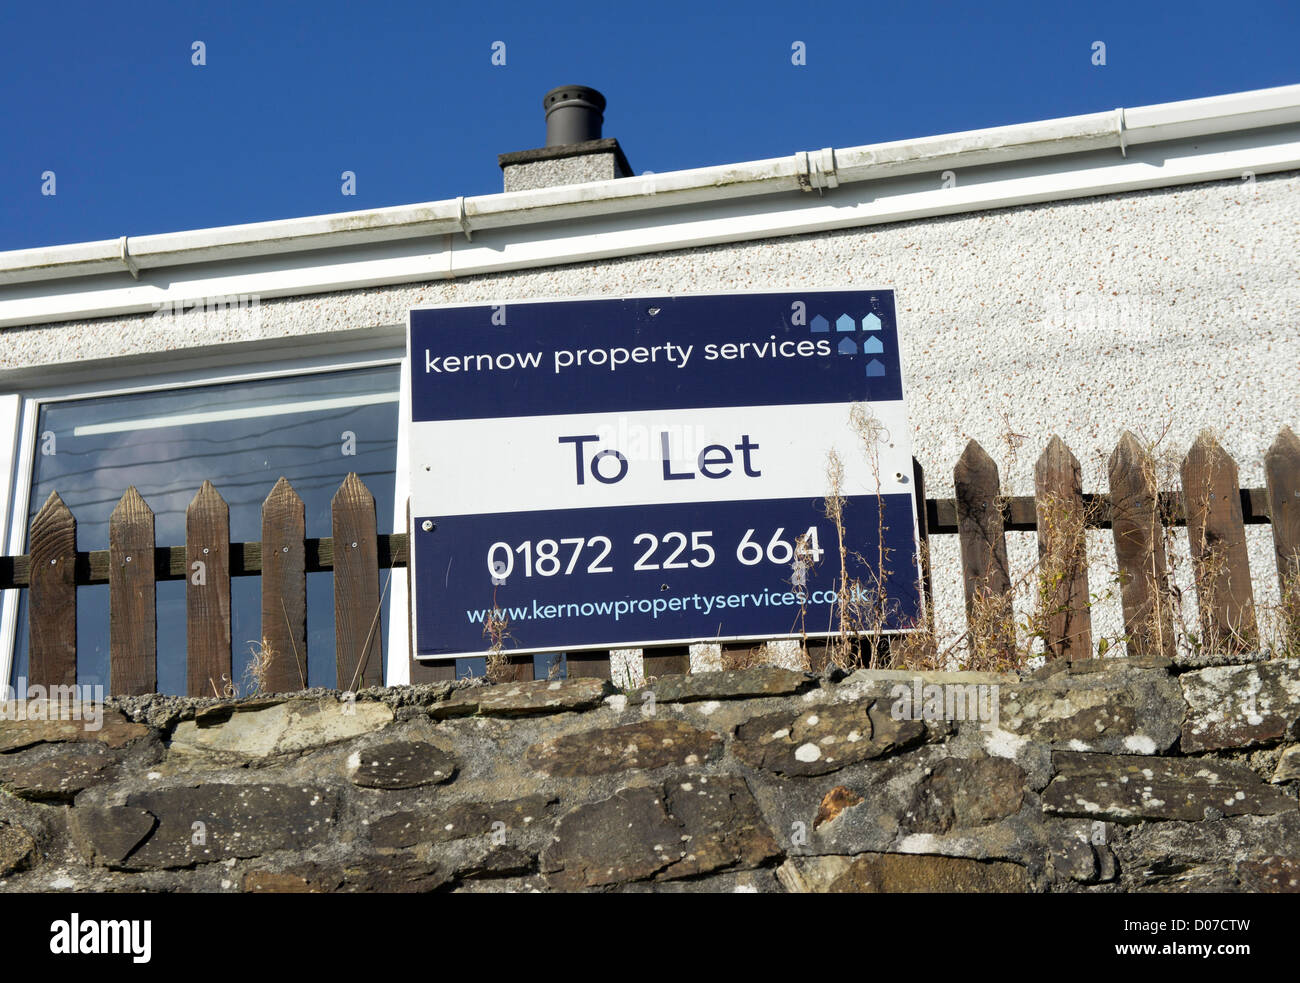 A house to let sign - Stock Image